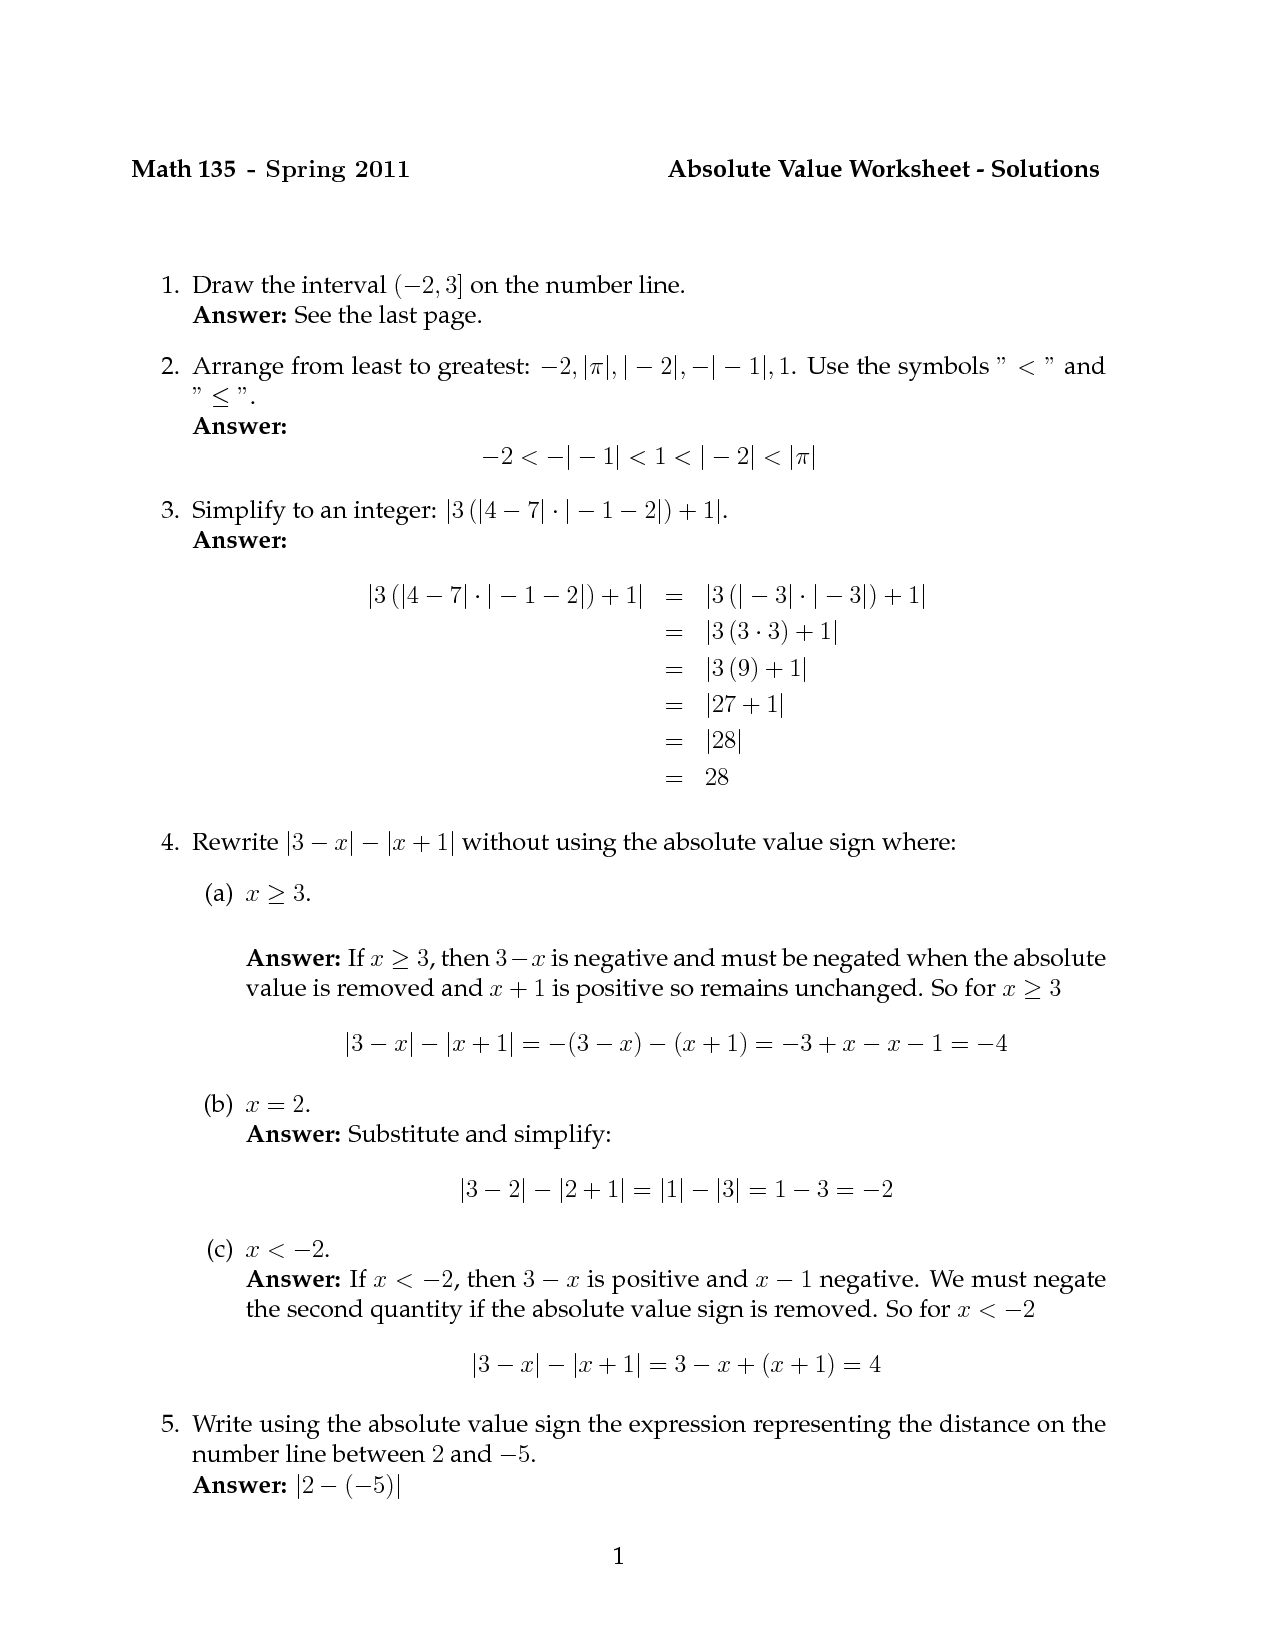 Mean Absolute Value Worksheet